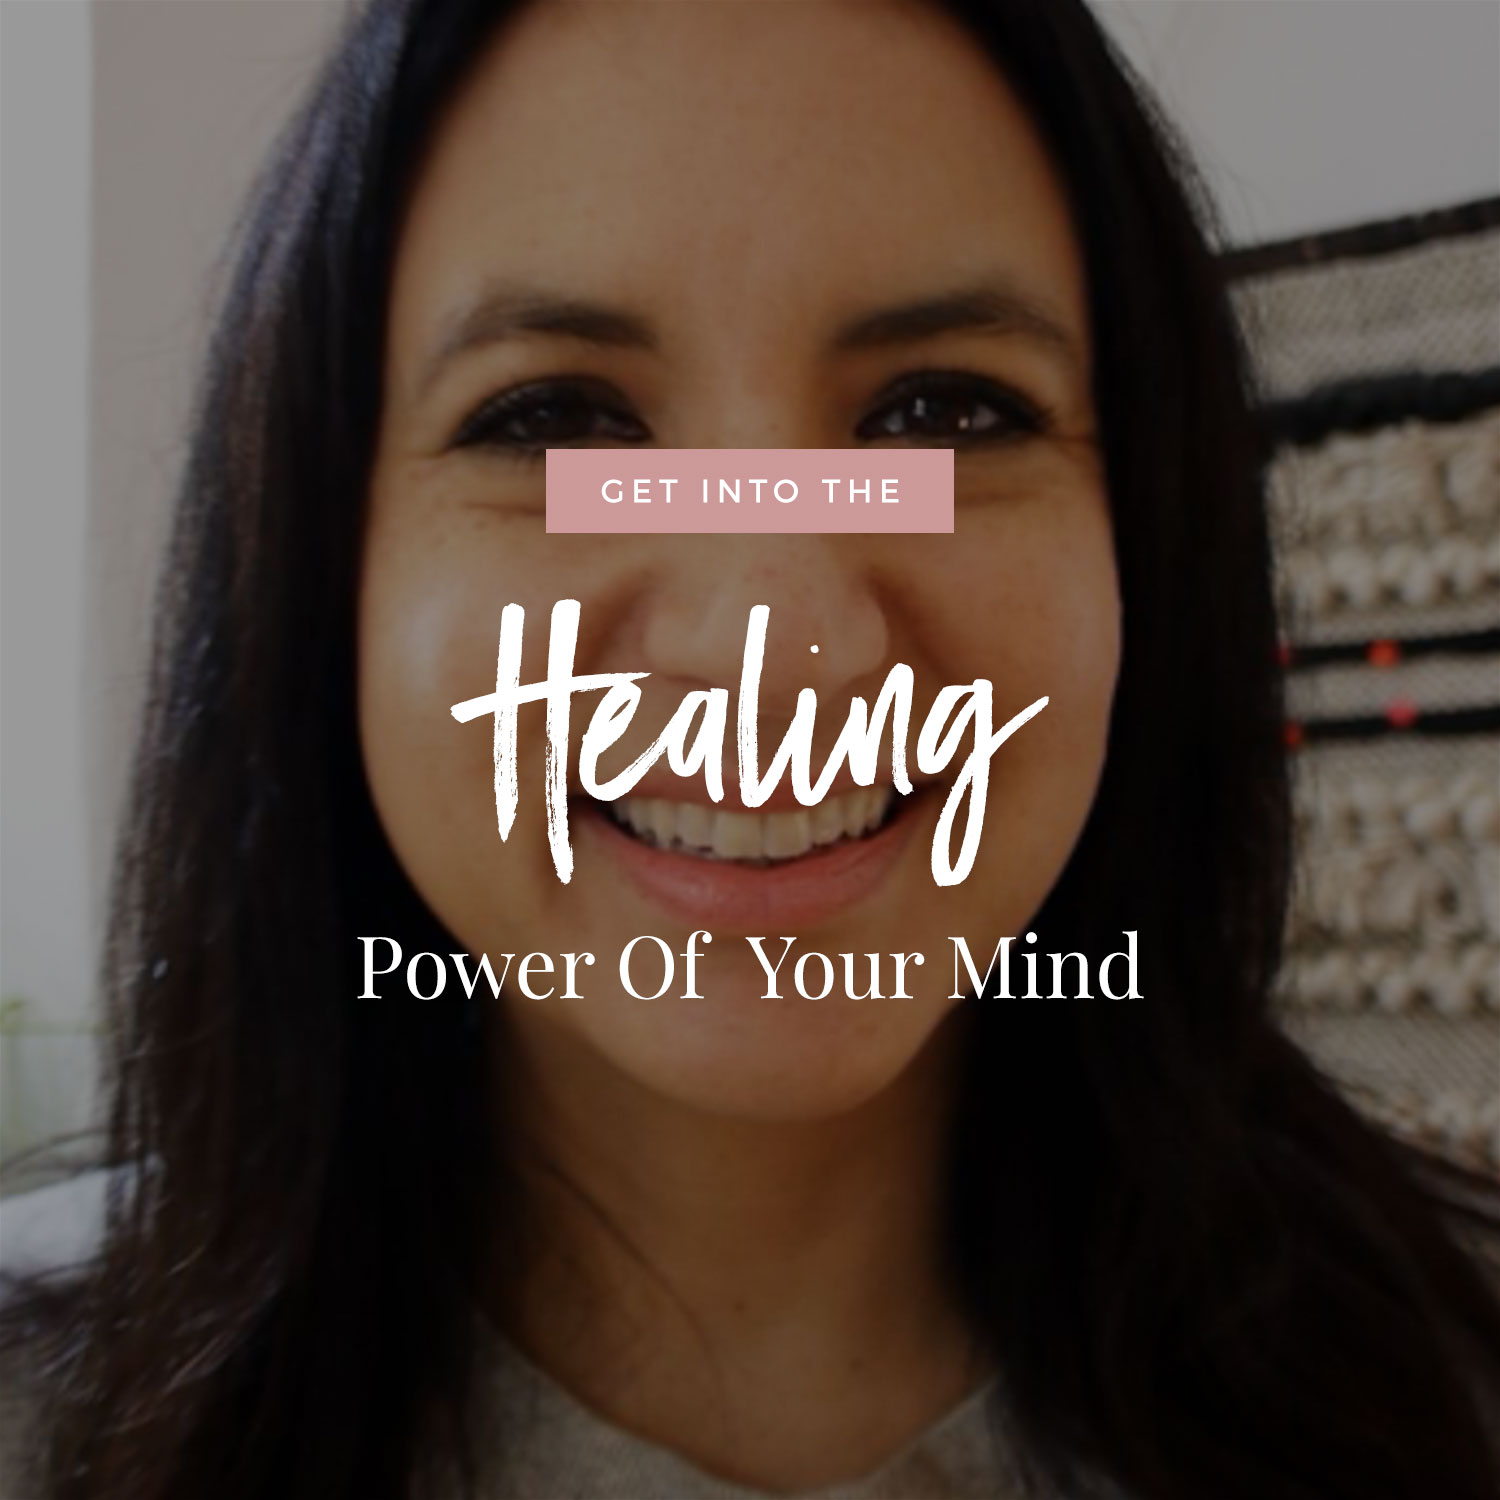 The Healing Power Of Your Mind